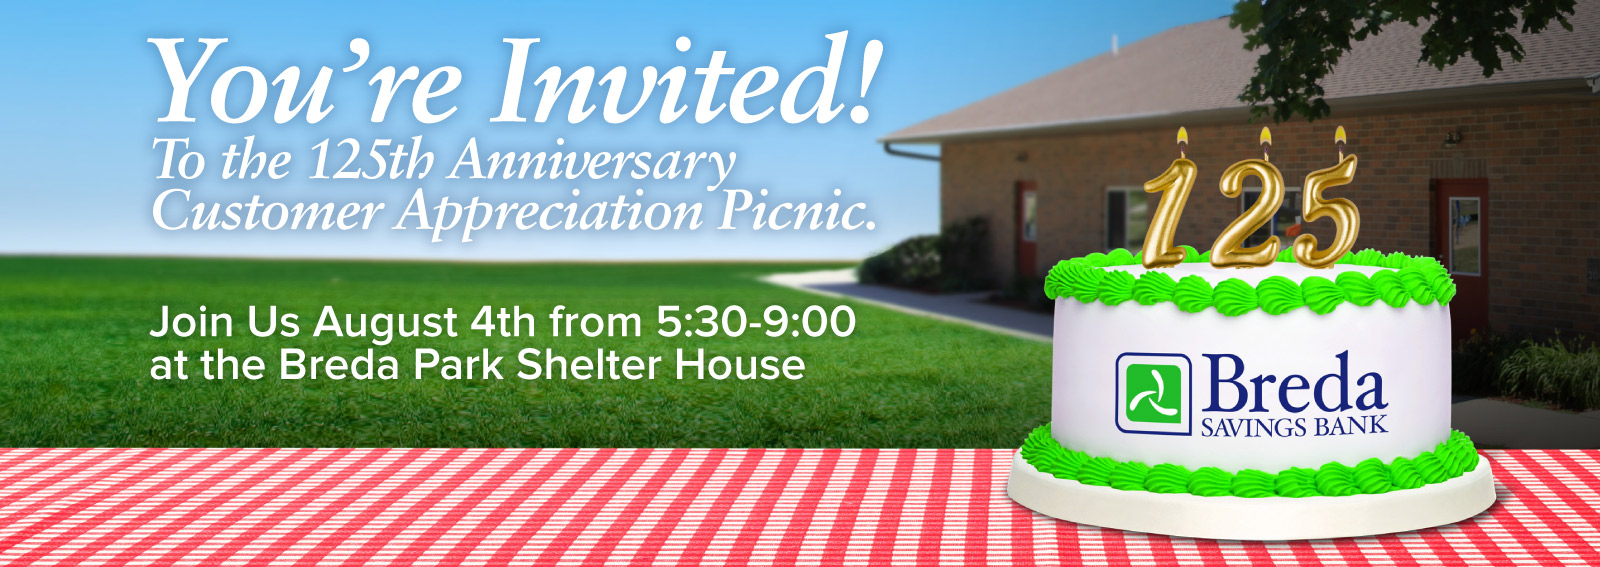 You're Invited! To the 125th Anniversary Customer Appreciation Picnic. Join Us August 4th from 5:30-9:00 at the Breda Park Shelter House.